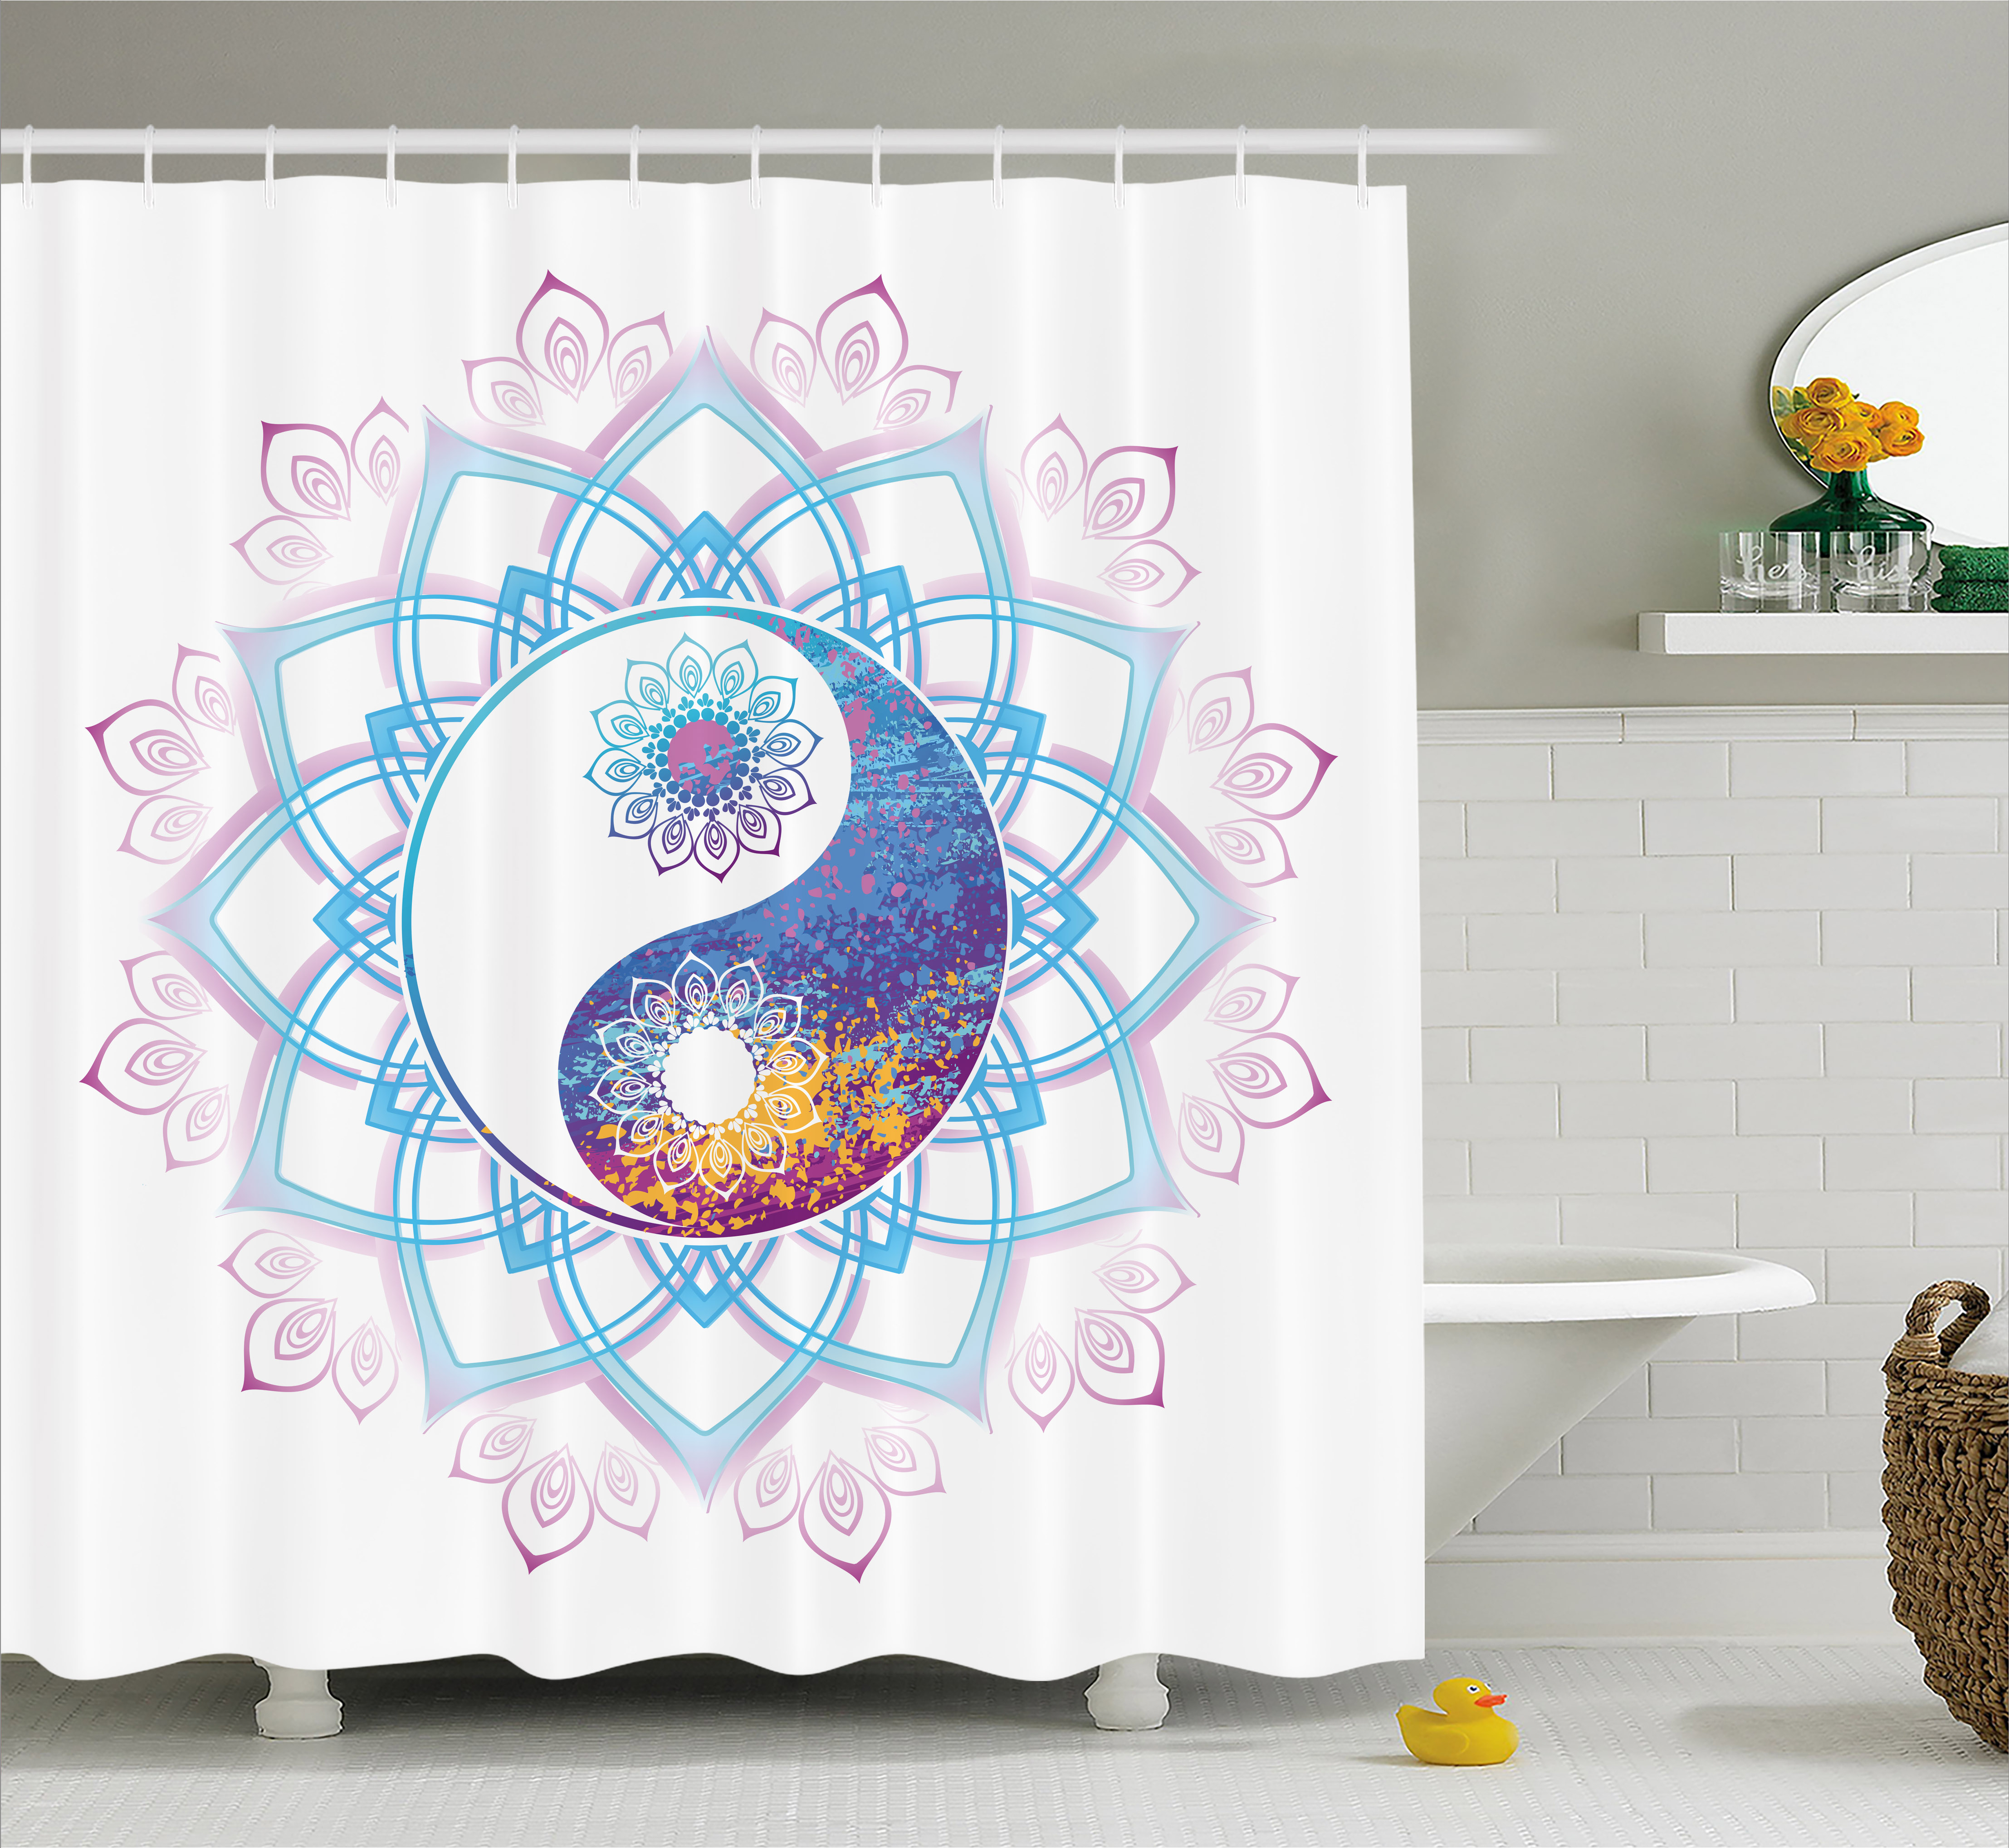 India Shower Curtain, Yin Yang Symbol Mandala Hippie Asian Design With  Floral Swirl Frame Image, Fabric Bathroom Set With Hooks, 69W X 84L Inches  ...